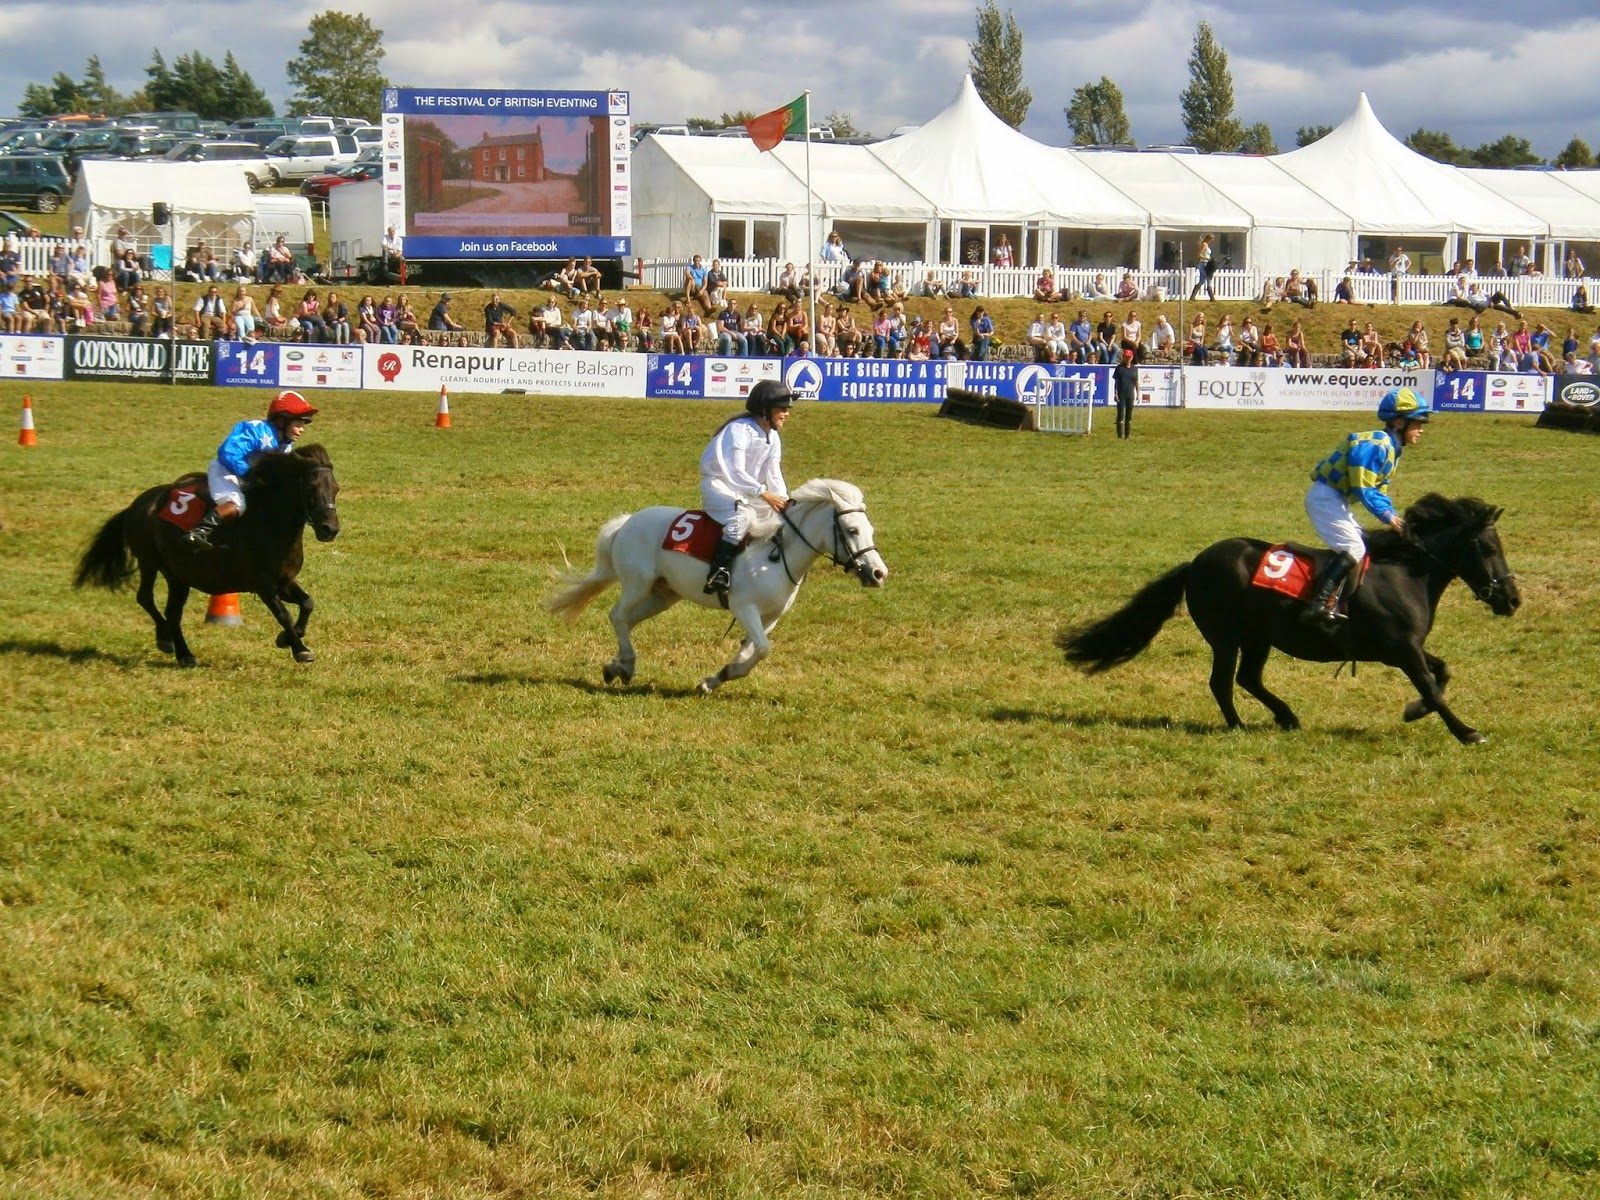 Shetland ponies racing at Gatcombe Festival of Eventing